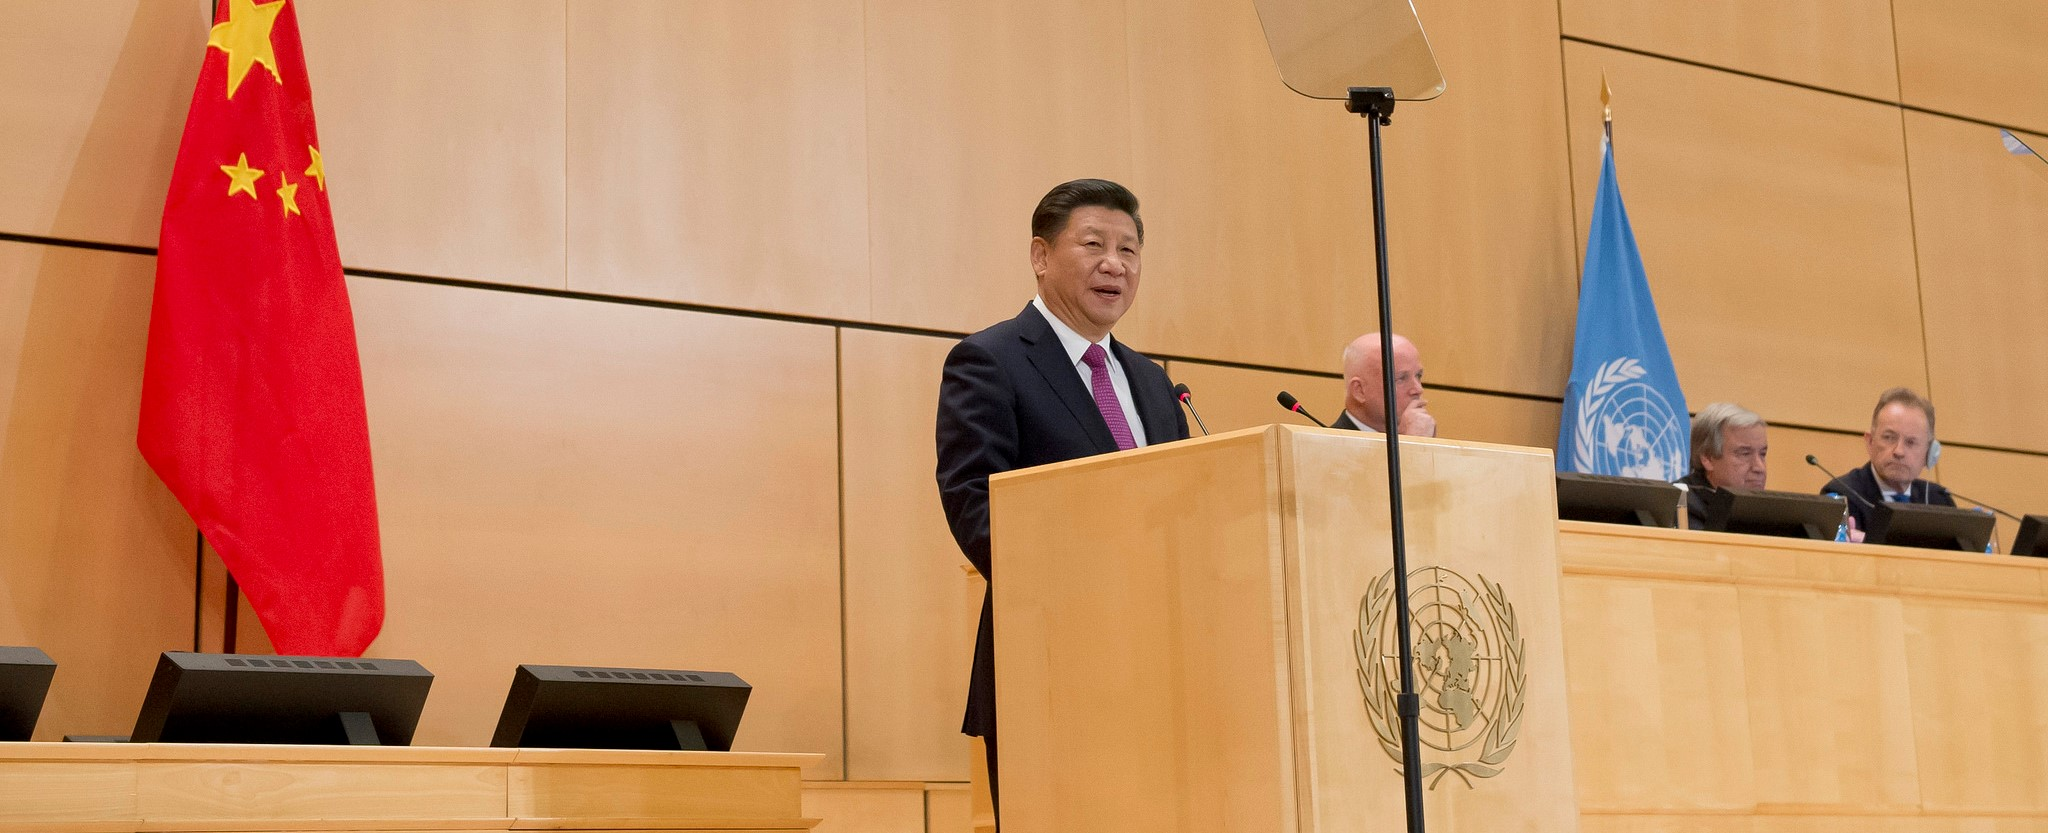 Chinese President Xi Jinping speaking at the United Nations in Geneva, January 2017 (Photo: UN Geneva/Flickr)